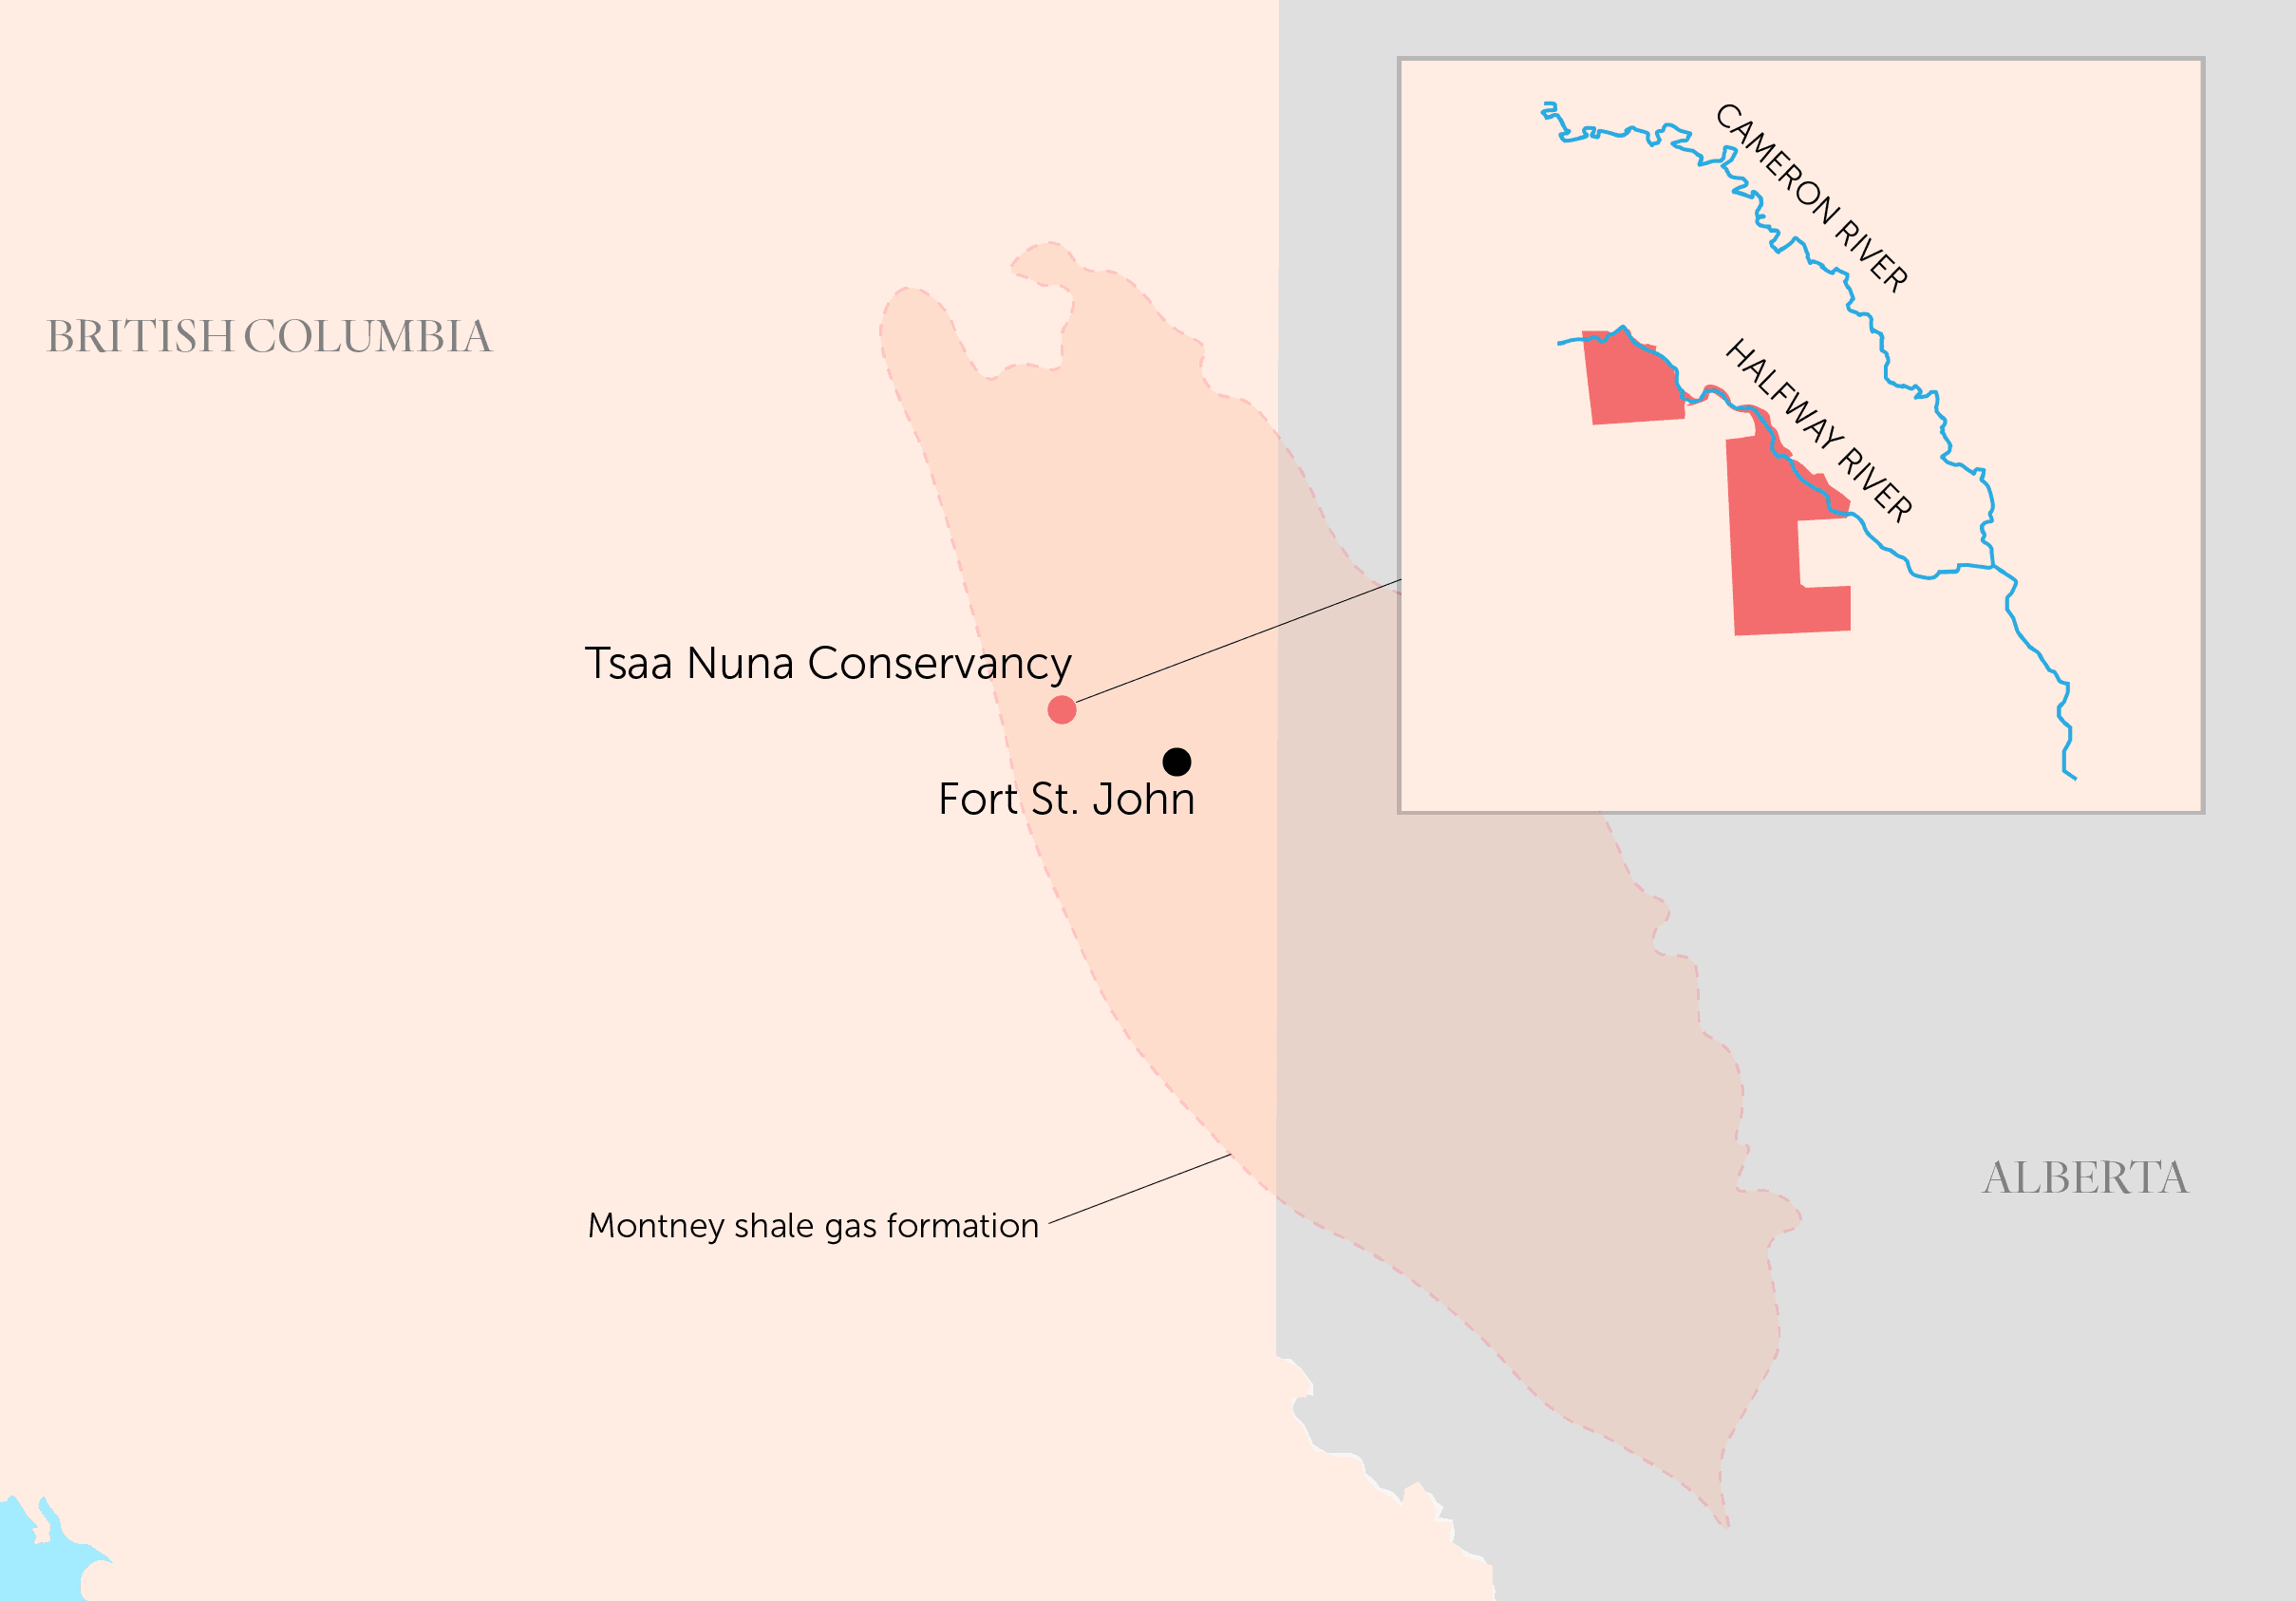 map of B.C. showing Tsaa Nuna Conservancy